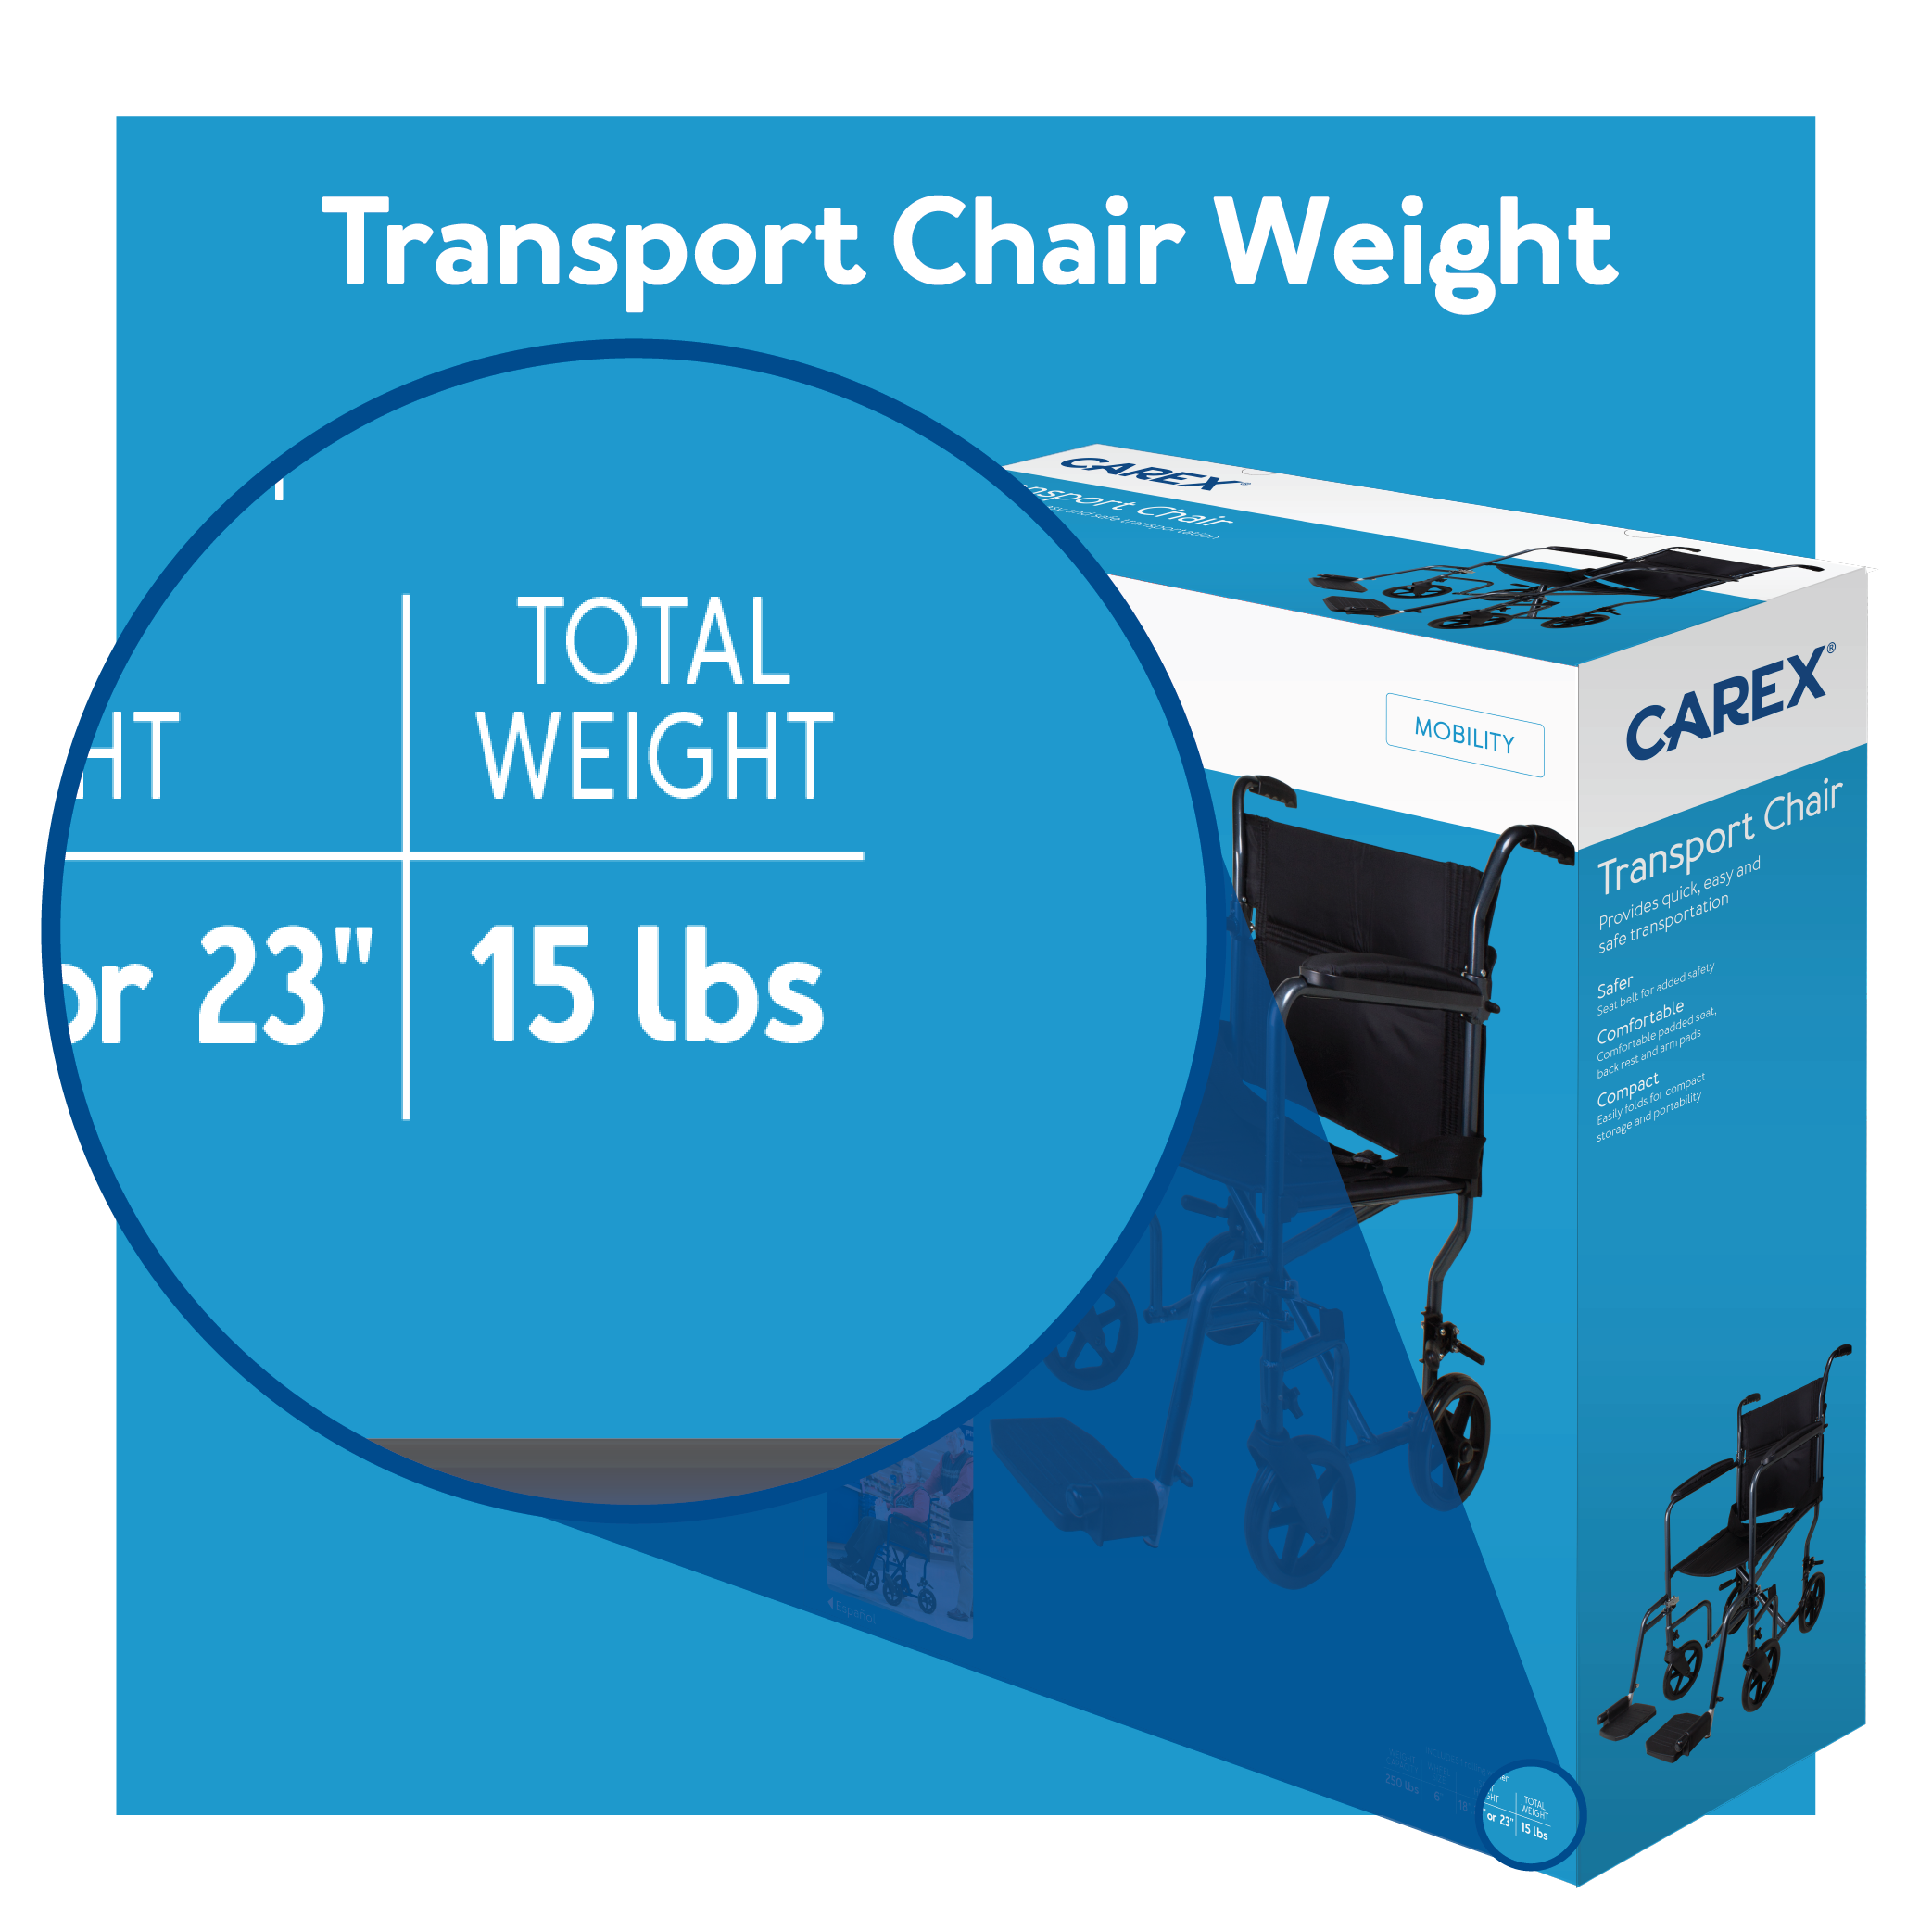 Transport Chair Weight